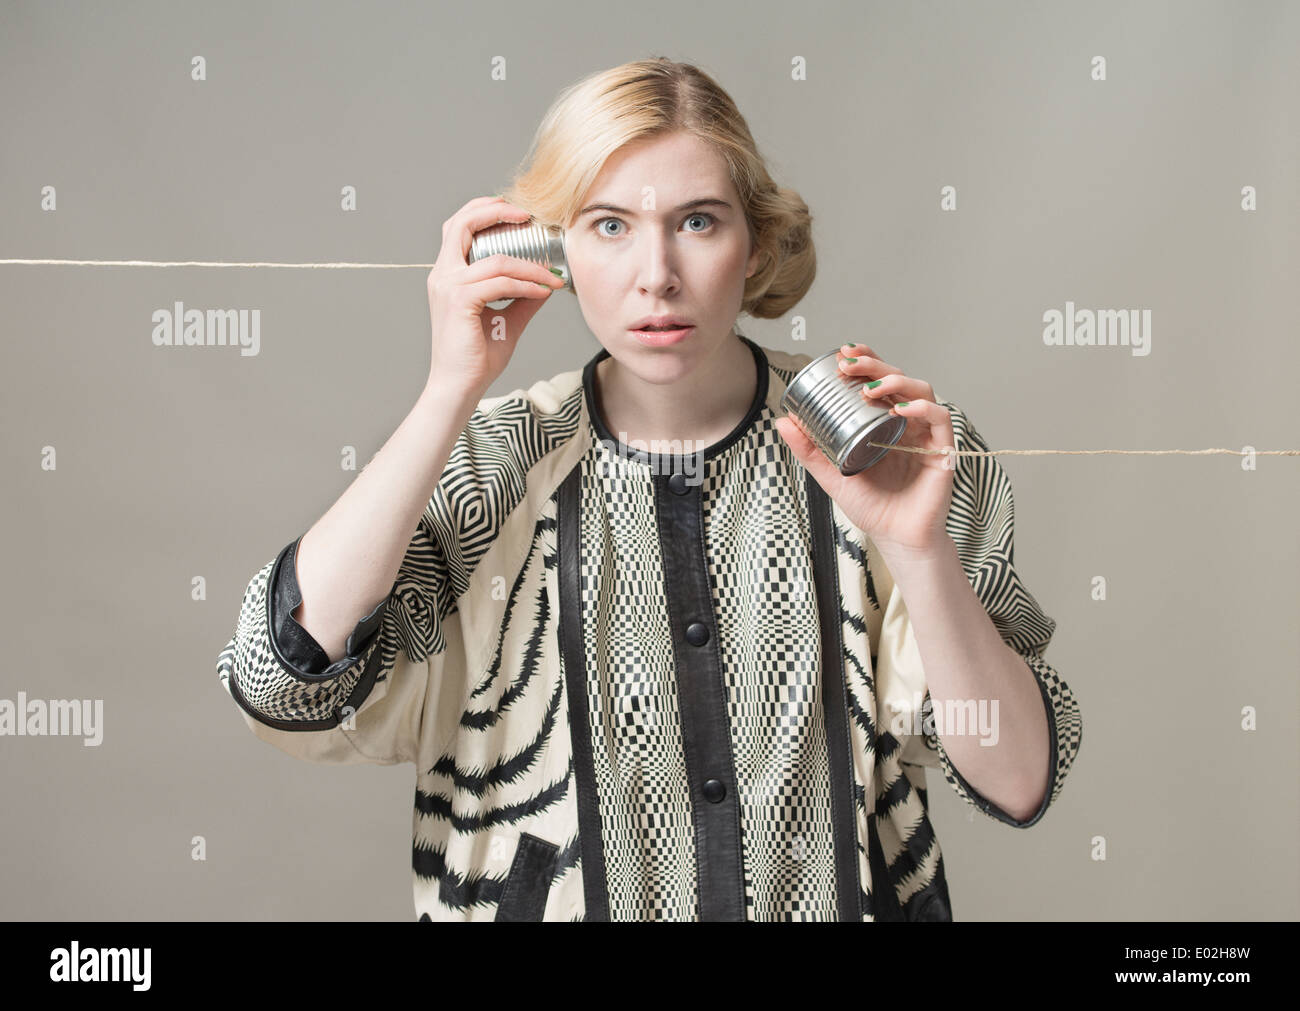 Blonde woman using tin can phone. Conceptual image of connection and communication. - Stock Image